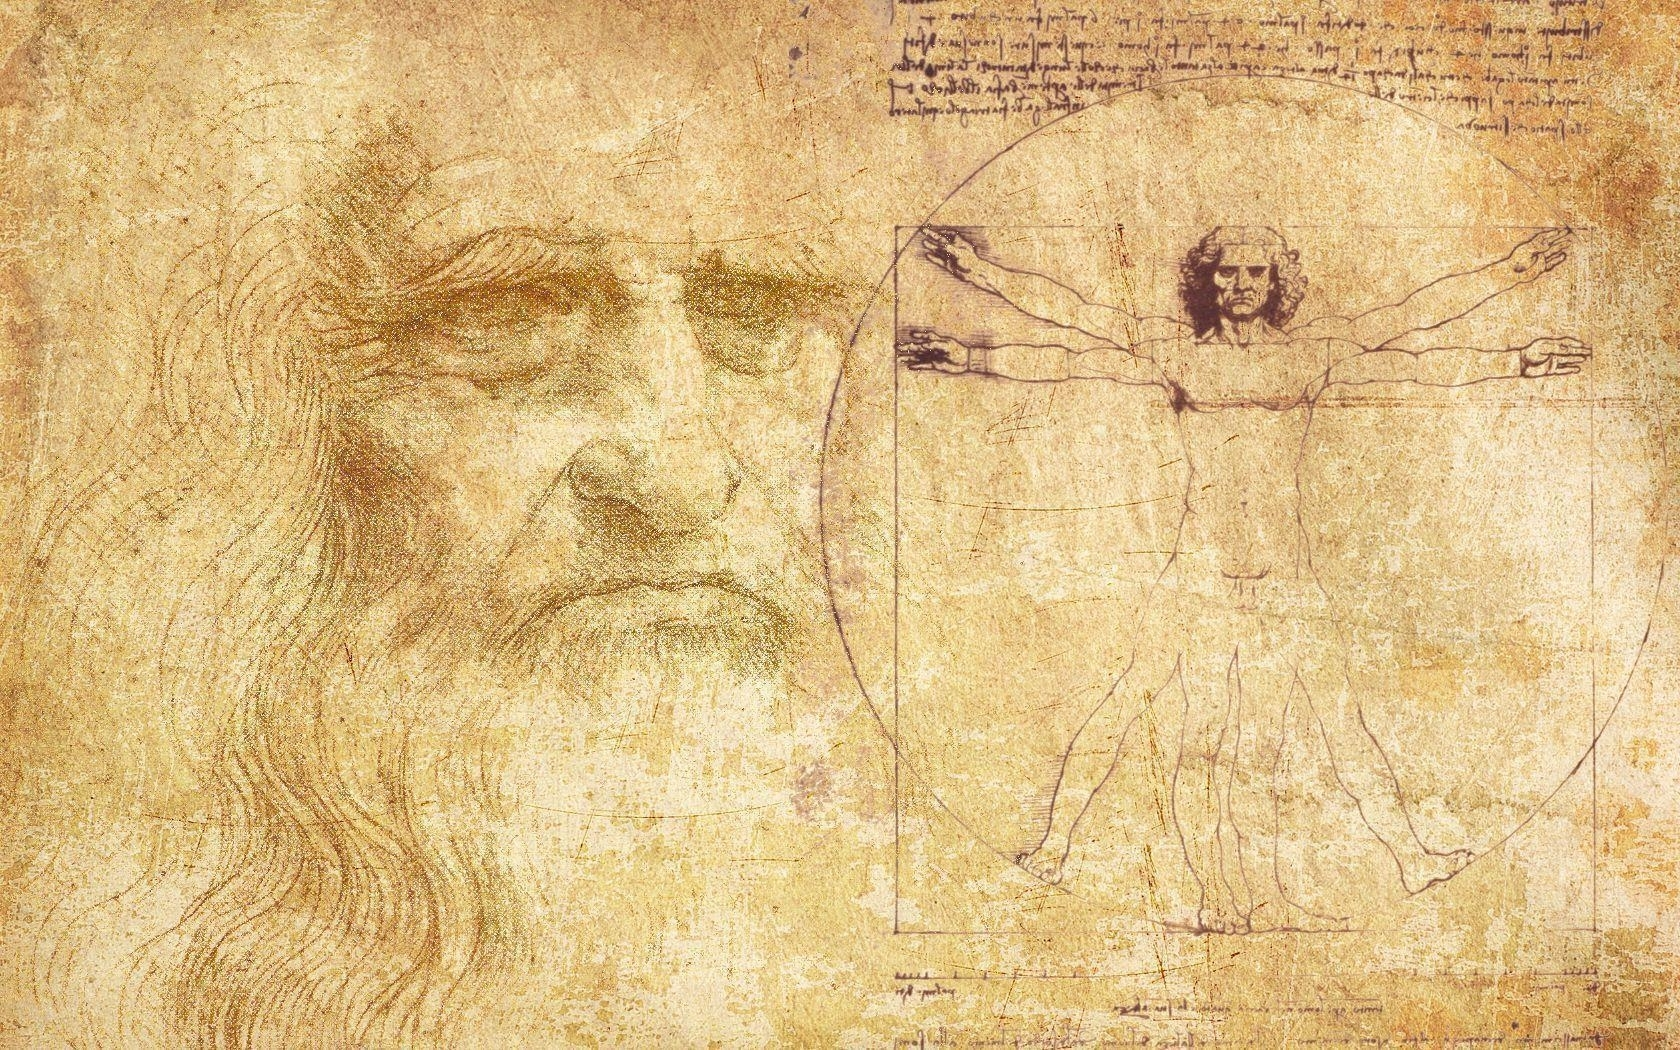 leonardo da vinci wallpapers - wallpaper cave